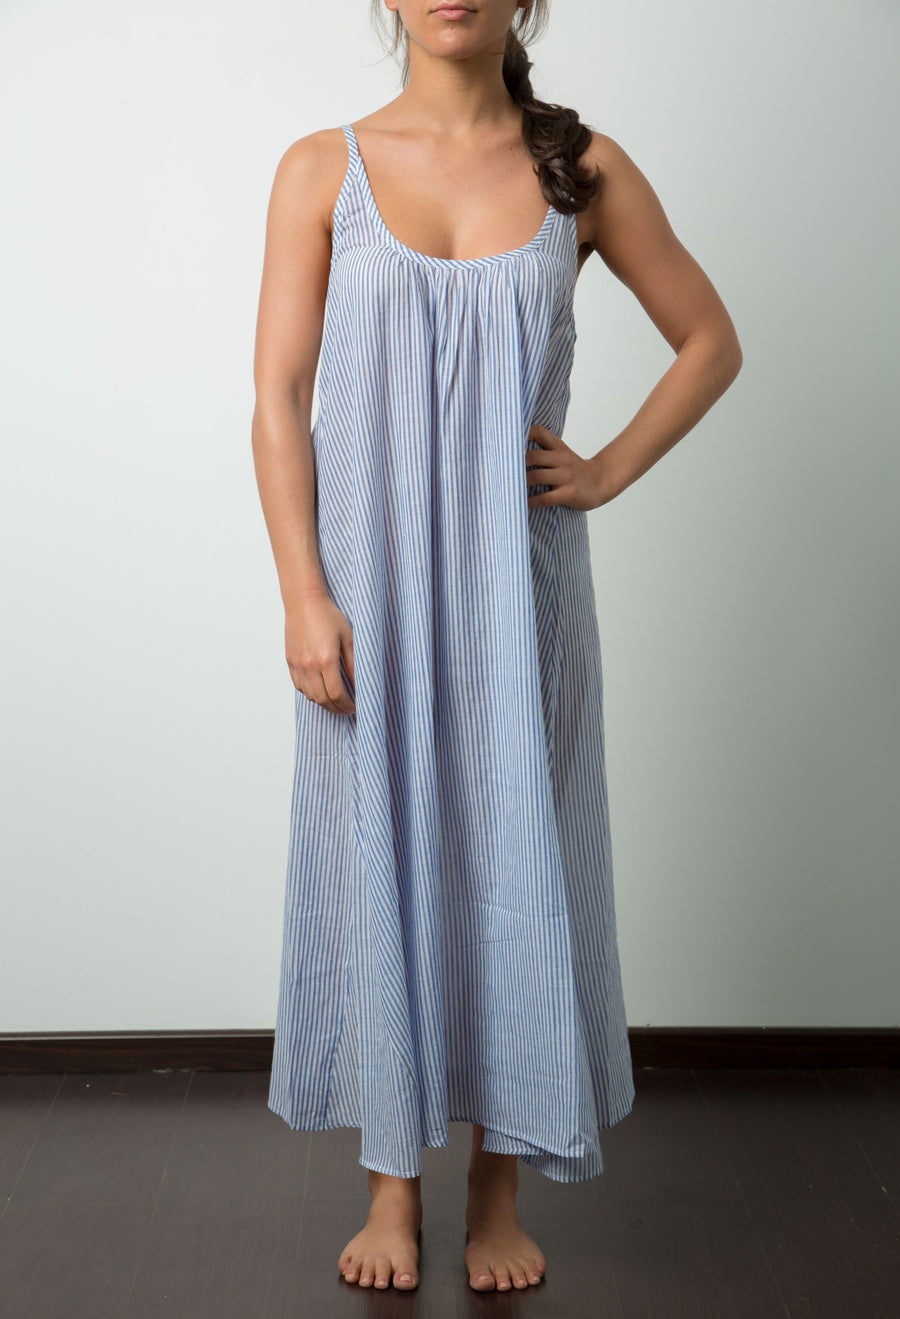 Doel Slip Dress in Blue and White Stripe